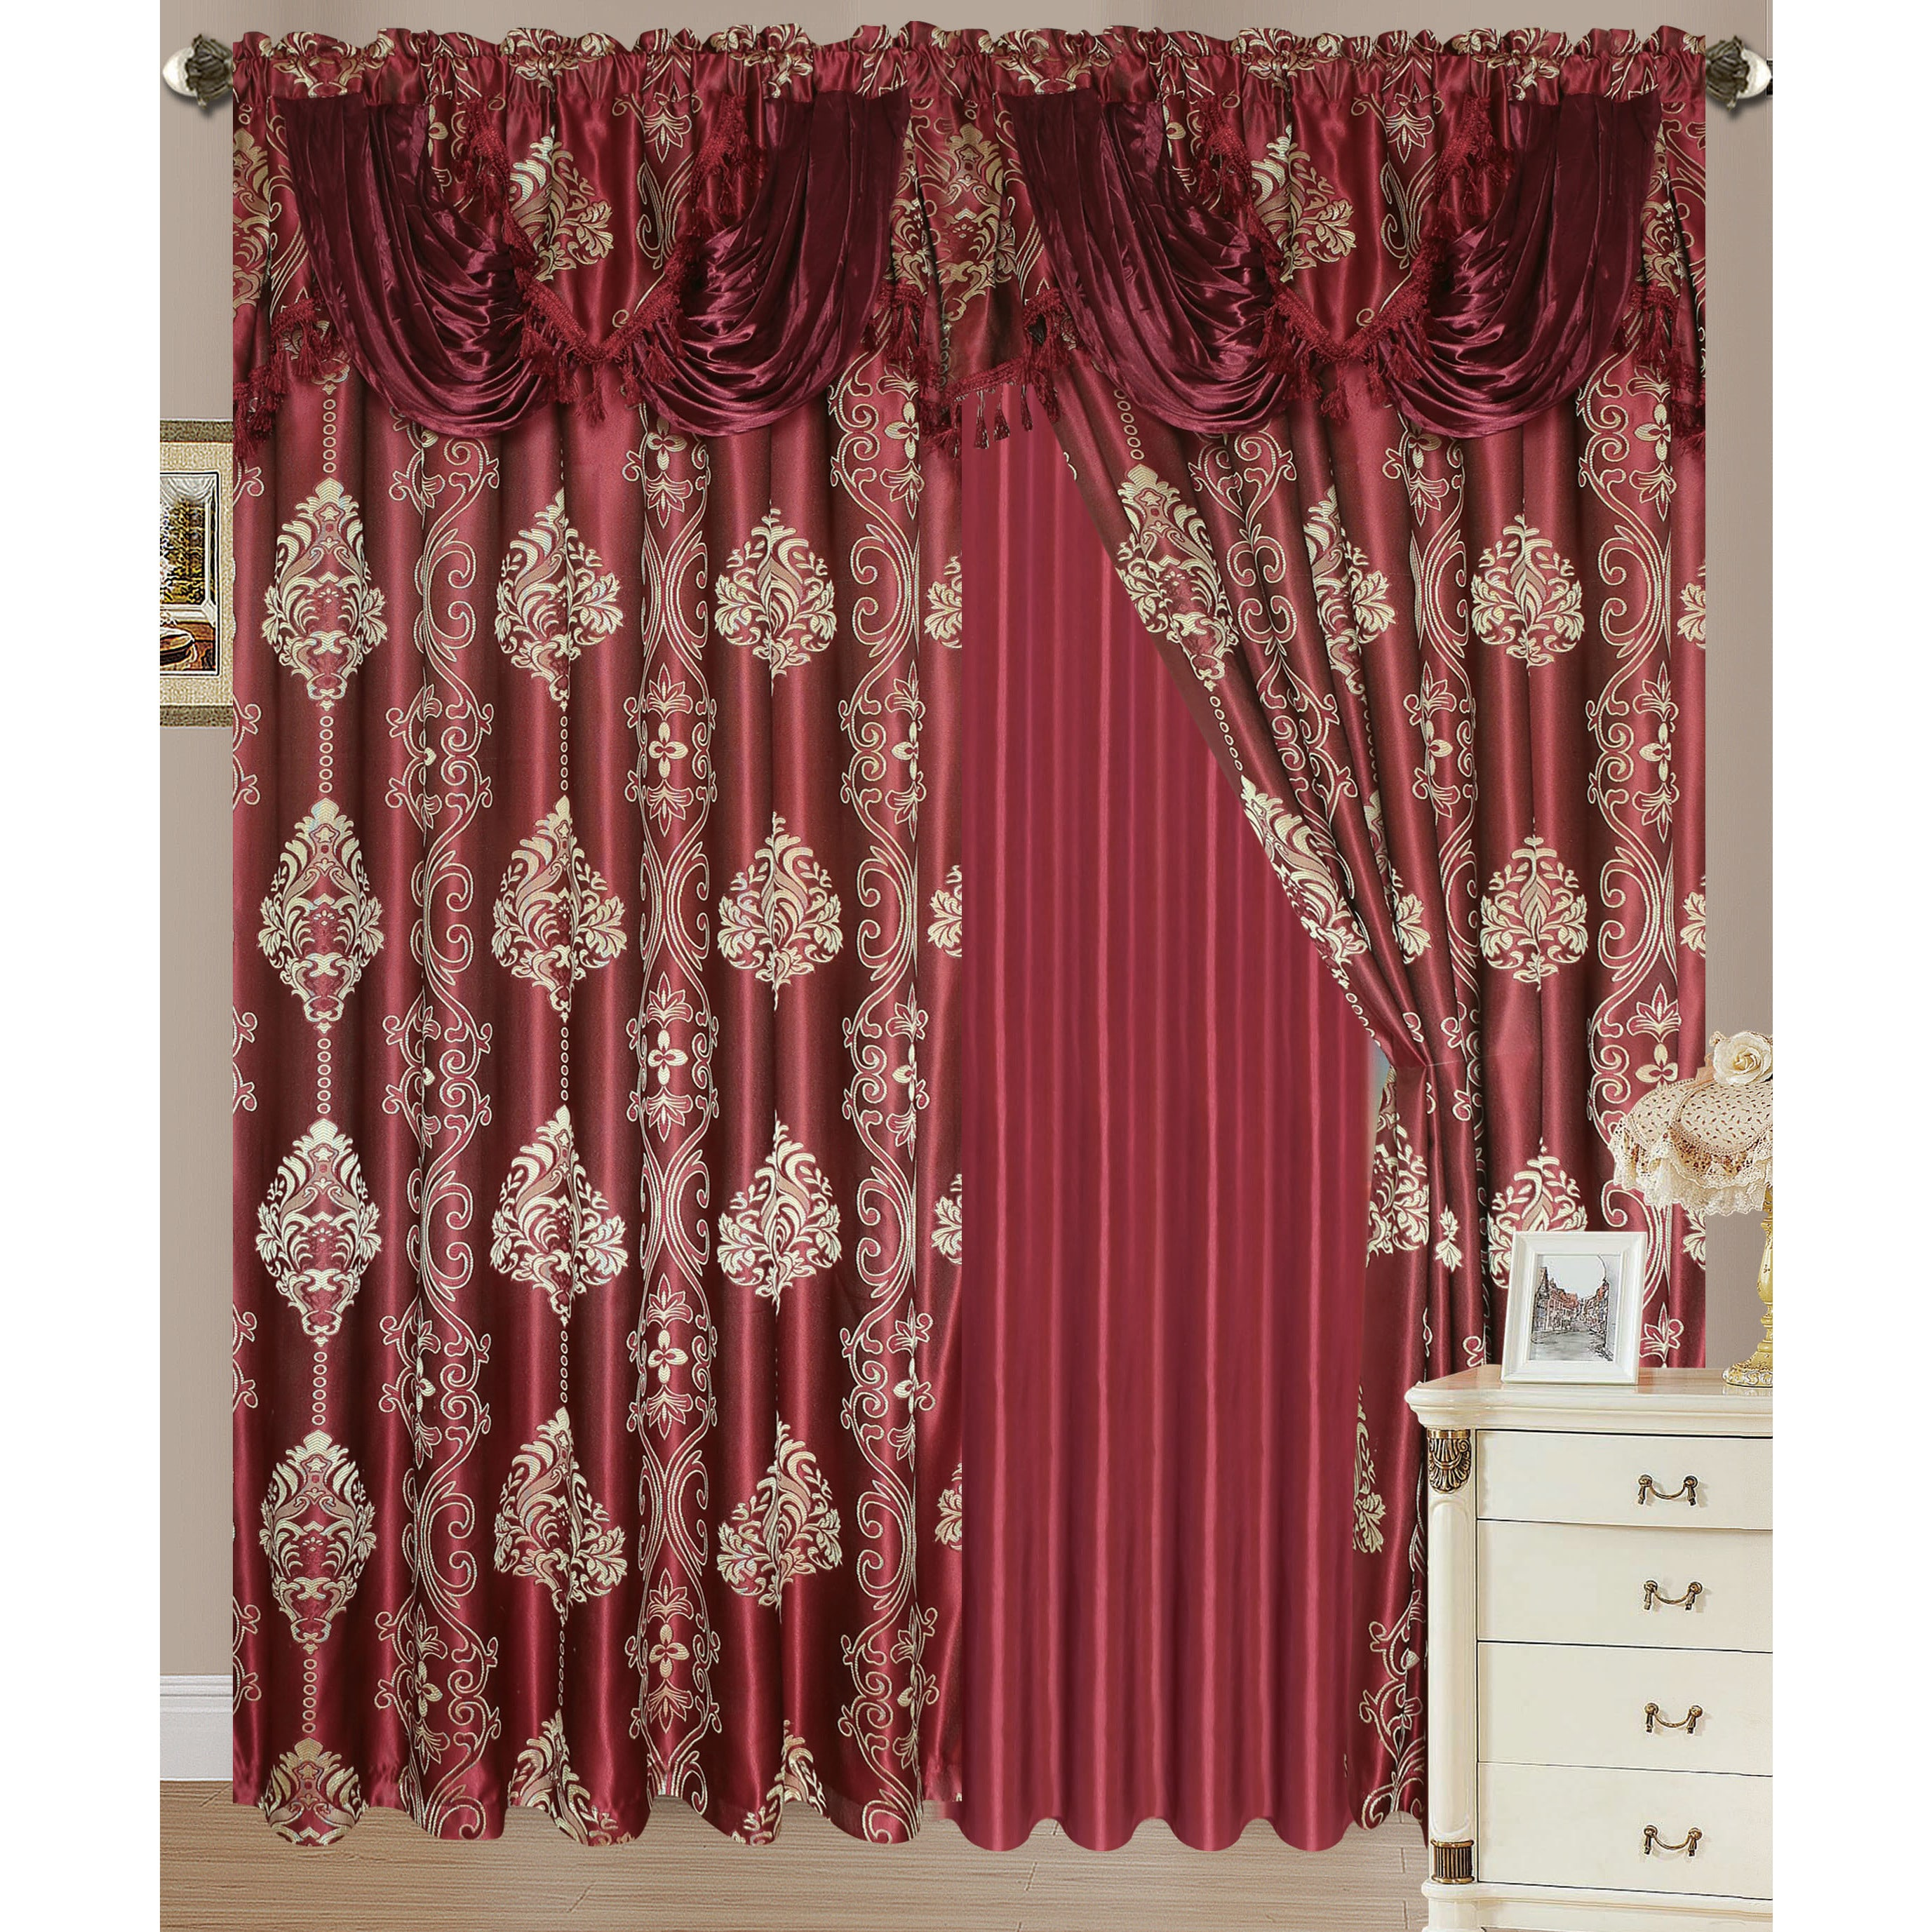 stylist sensational ideas curtains rod rods small curtain design window